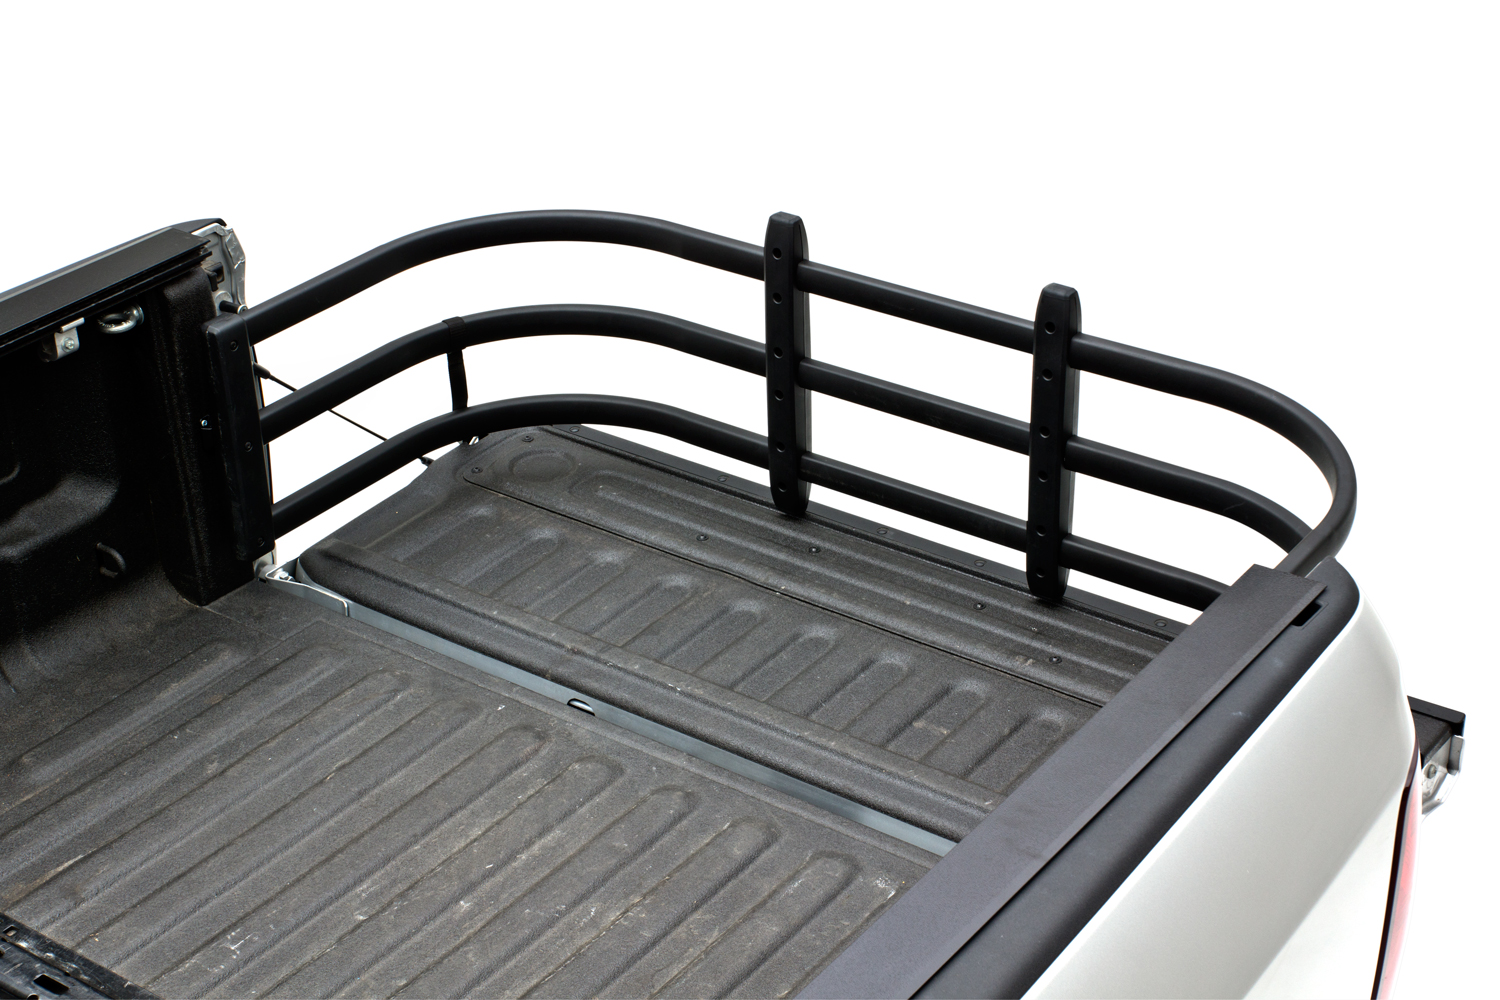 /& Tundra Mark LT AMP Research Black BedXTender HD Max for F-150 Bed Extender